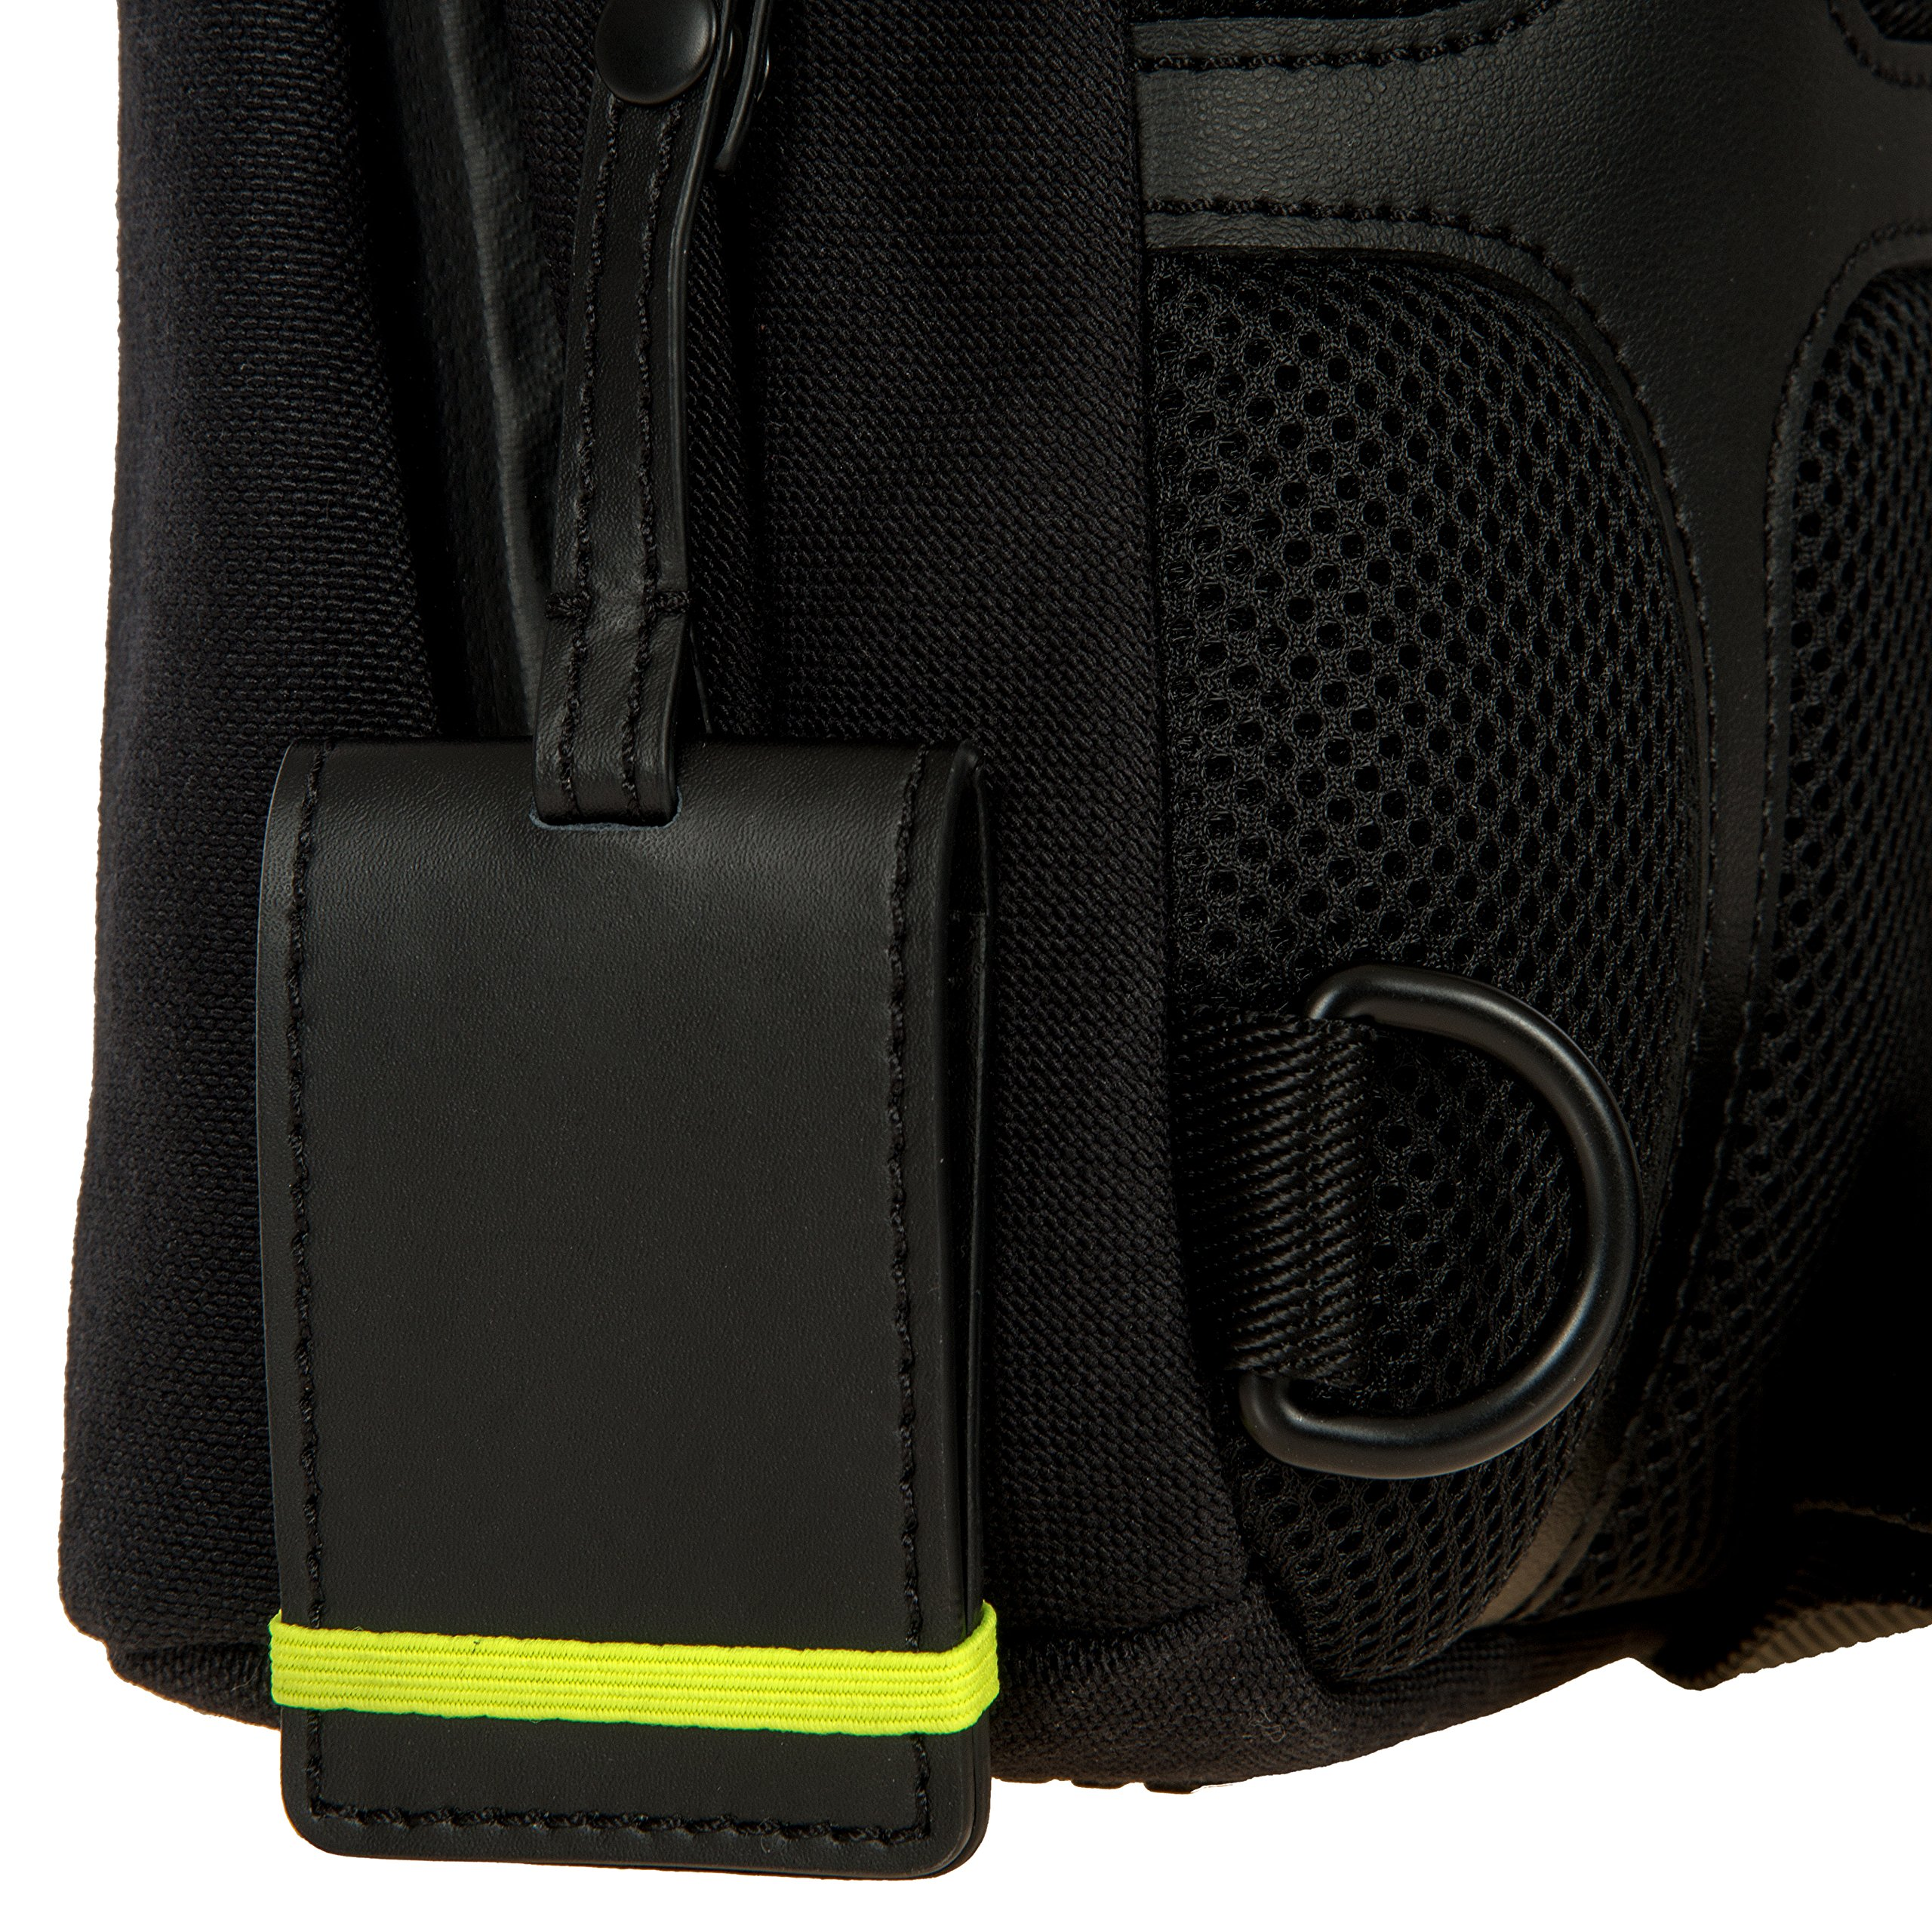 Bric's Men's Moleskine Bag Sling Backpack, Black, One Size by Bric's (Image #6)